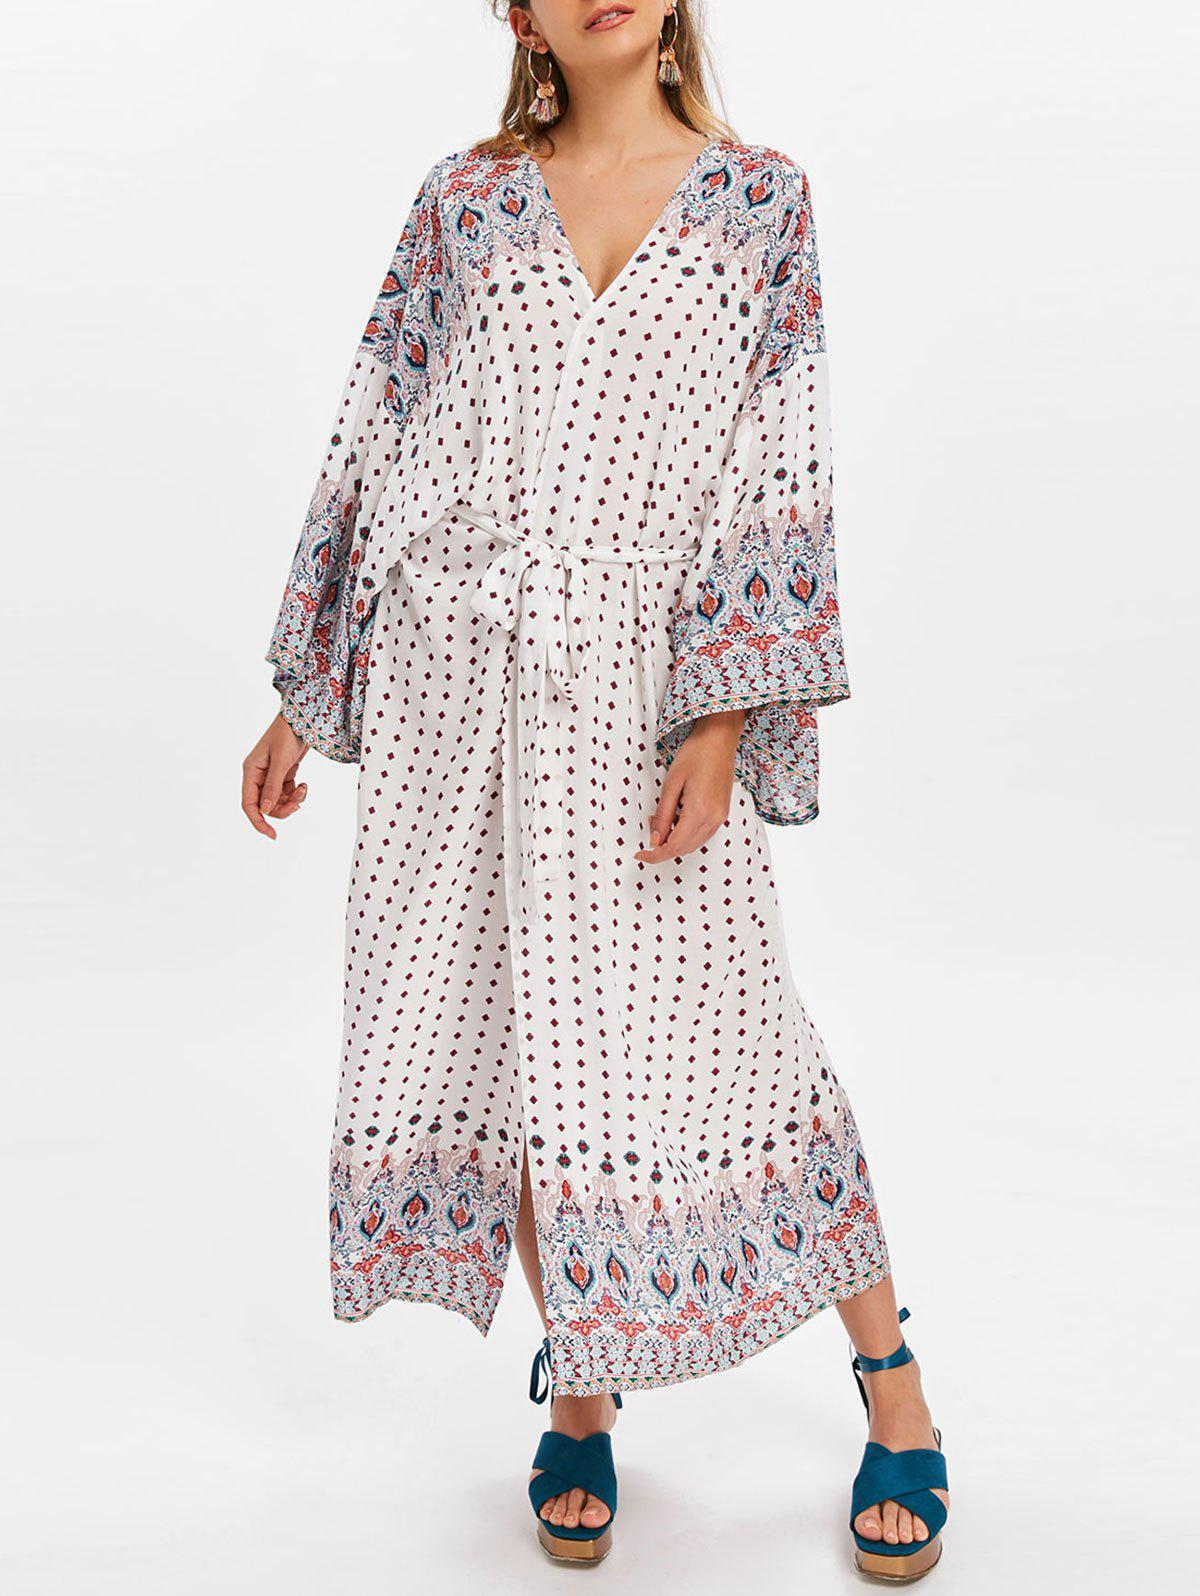 Affordable Polka Dot Cover Up Dress with Waistbelt